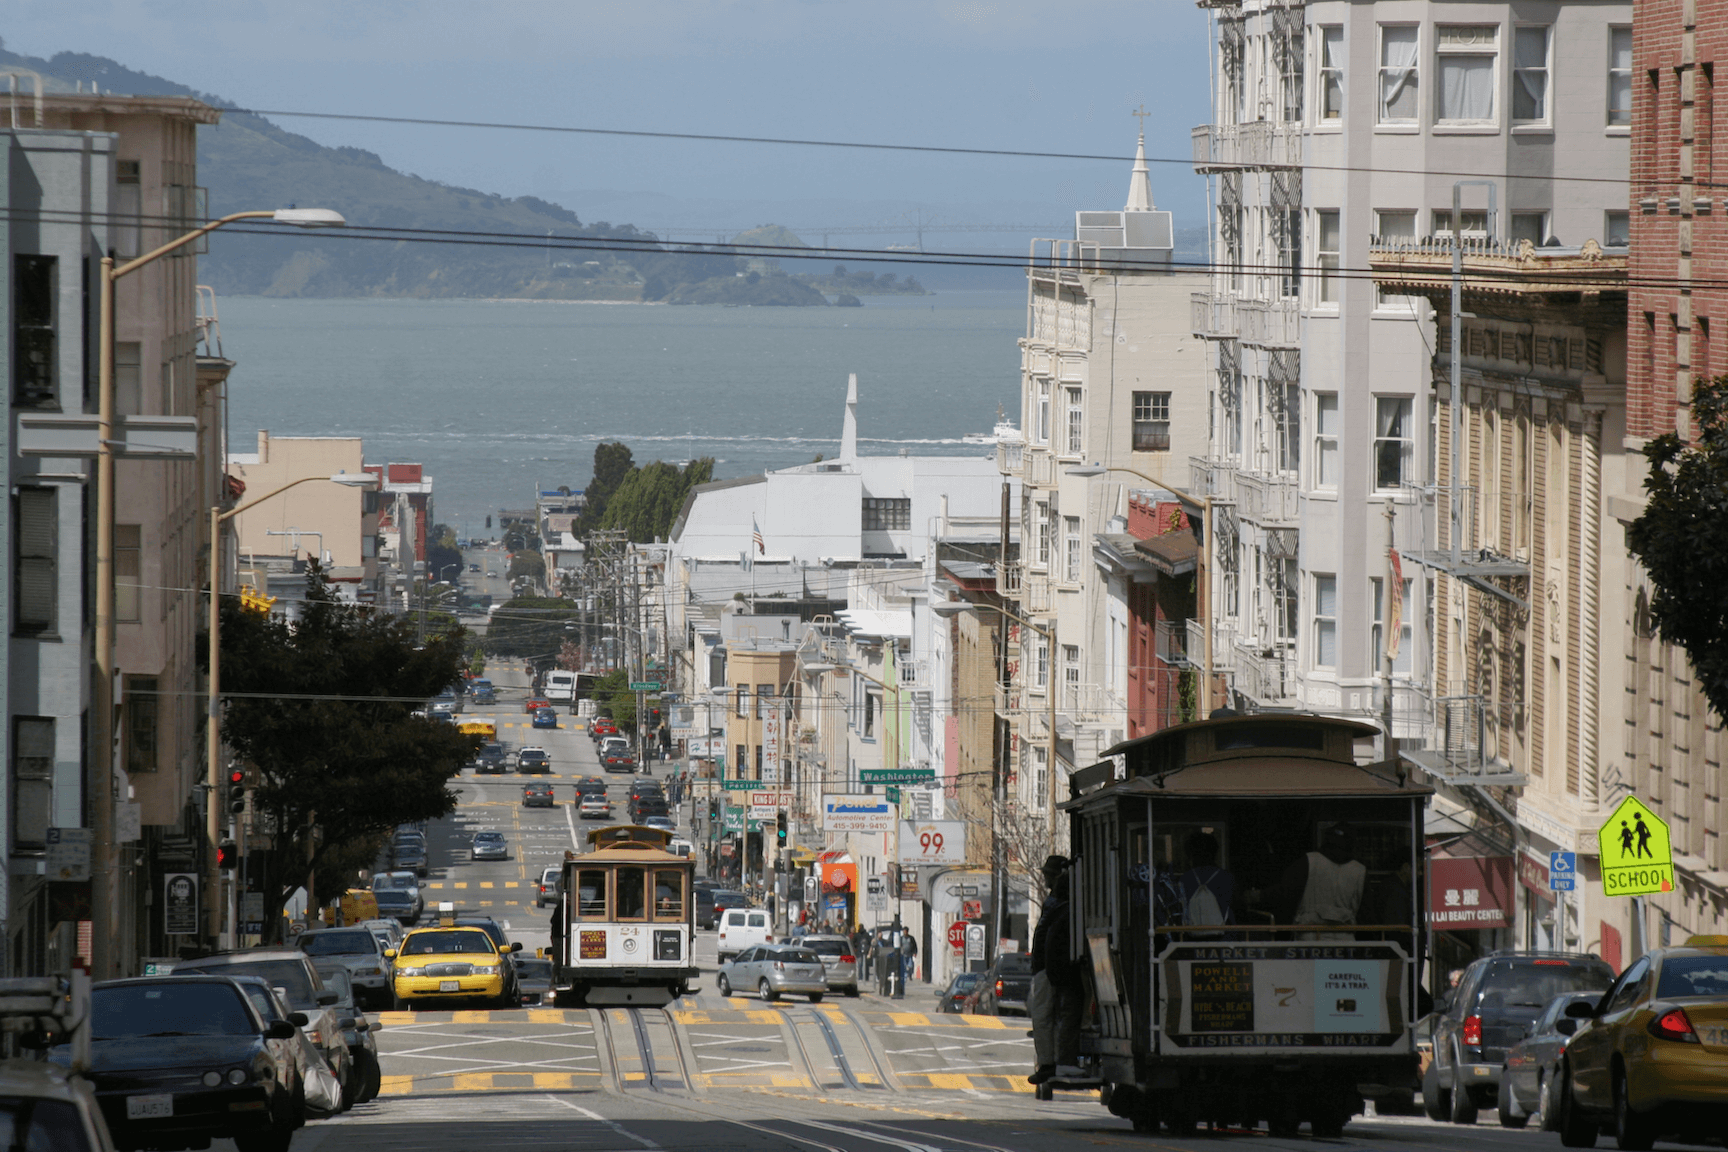 Nob Hill street cars with the Bay in the background